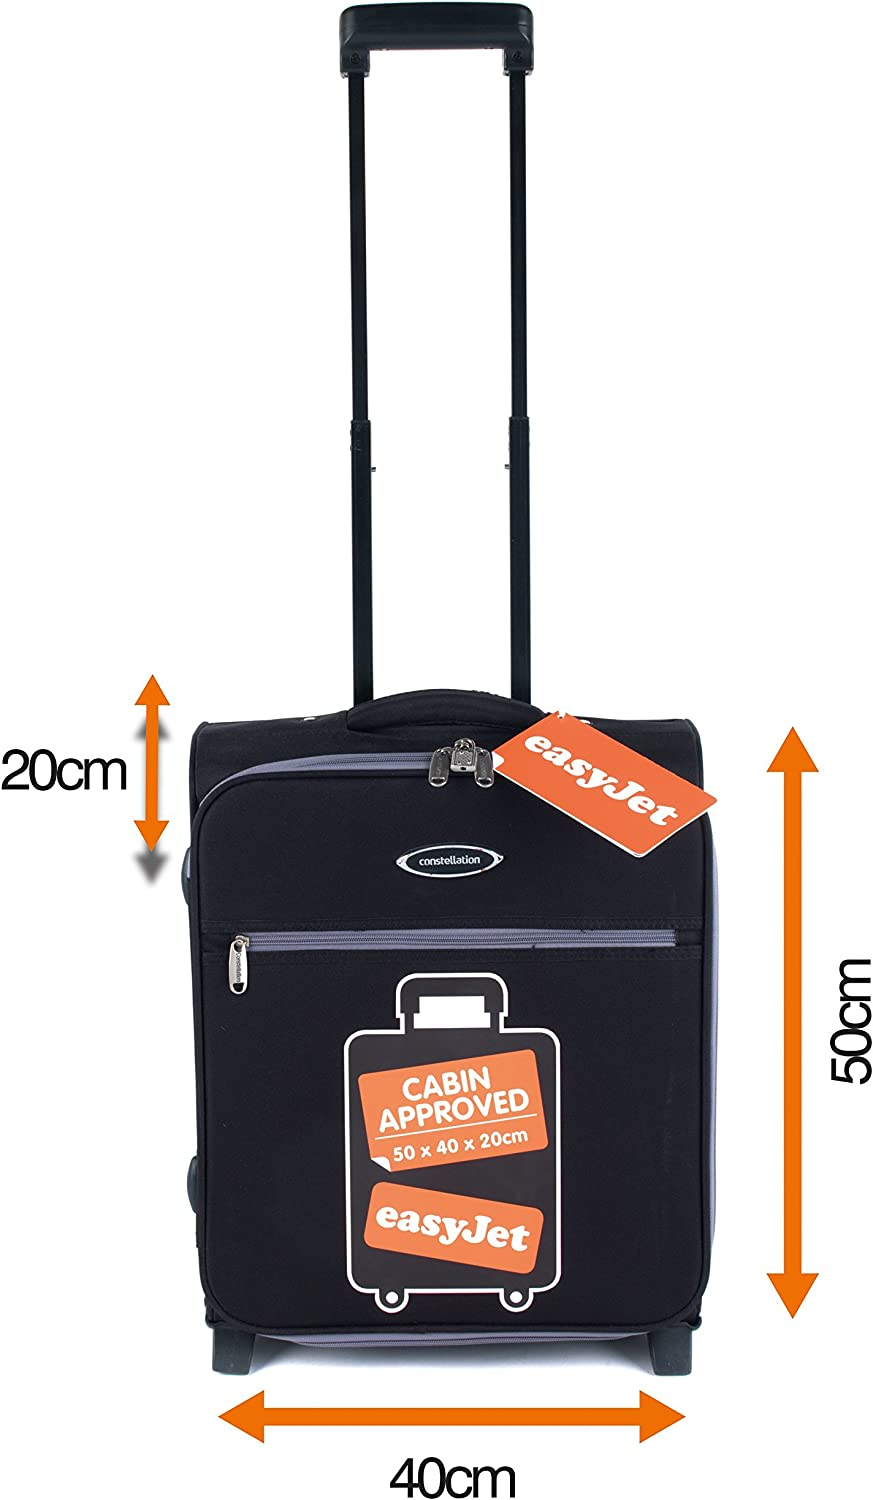 Black//Grey Constellation LG00321BGSTK Easyjet Approved Maximum Capacity Cabin Case